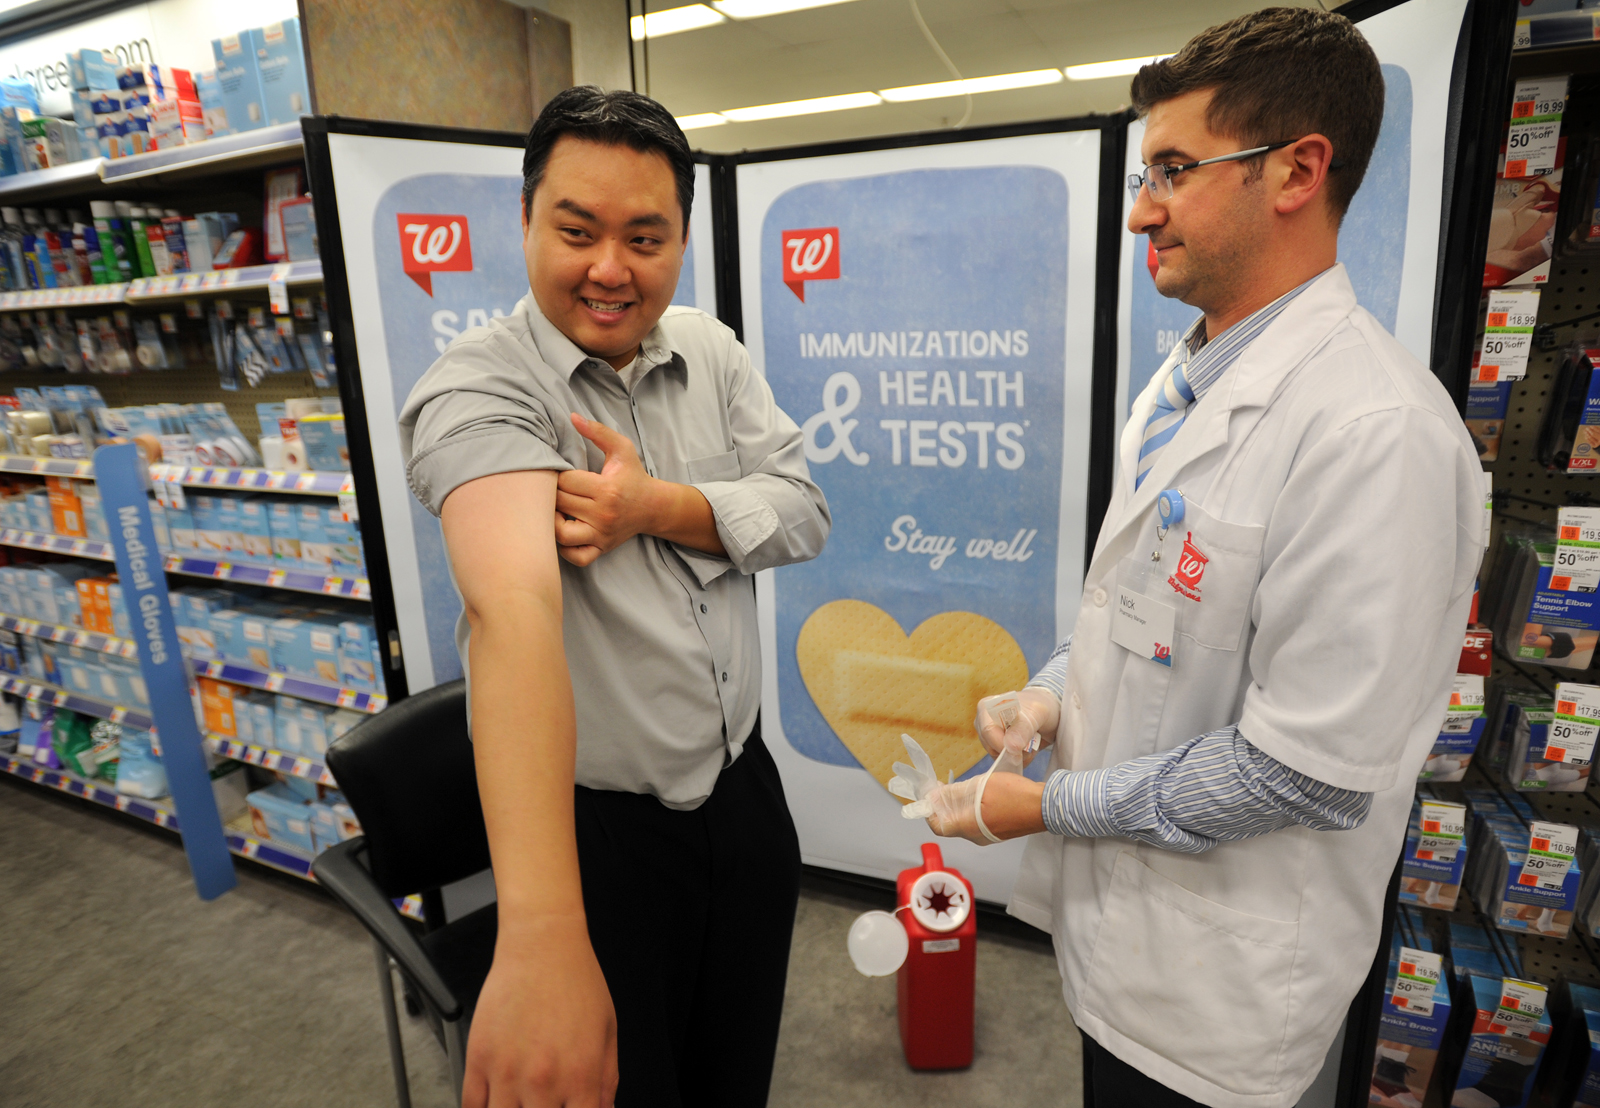 Ramping up for flu season - Connecticut Post